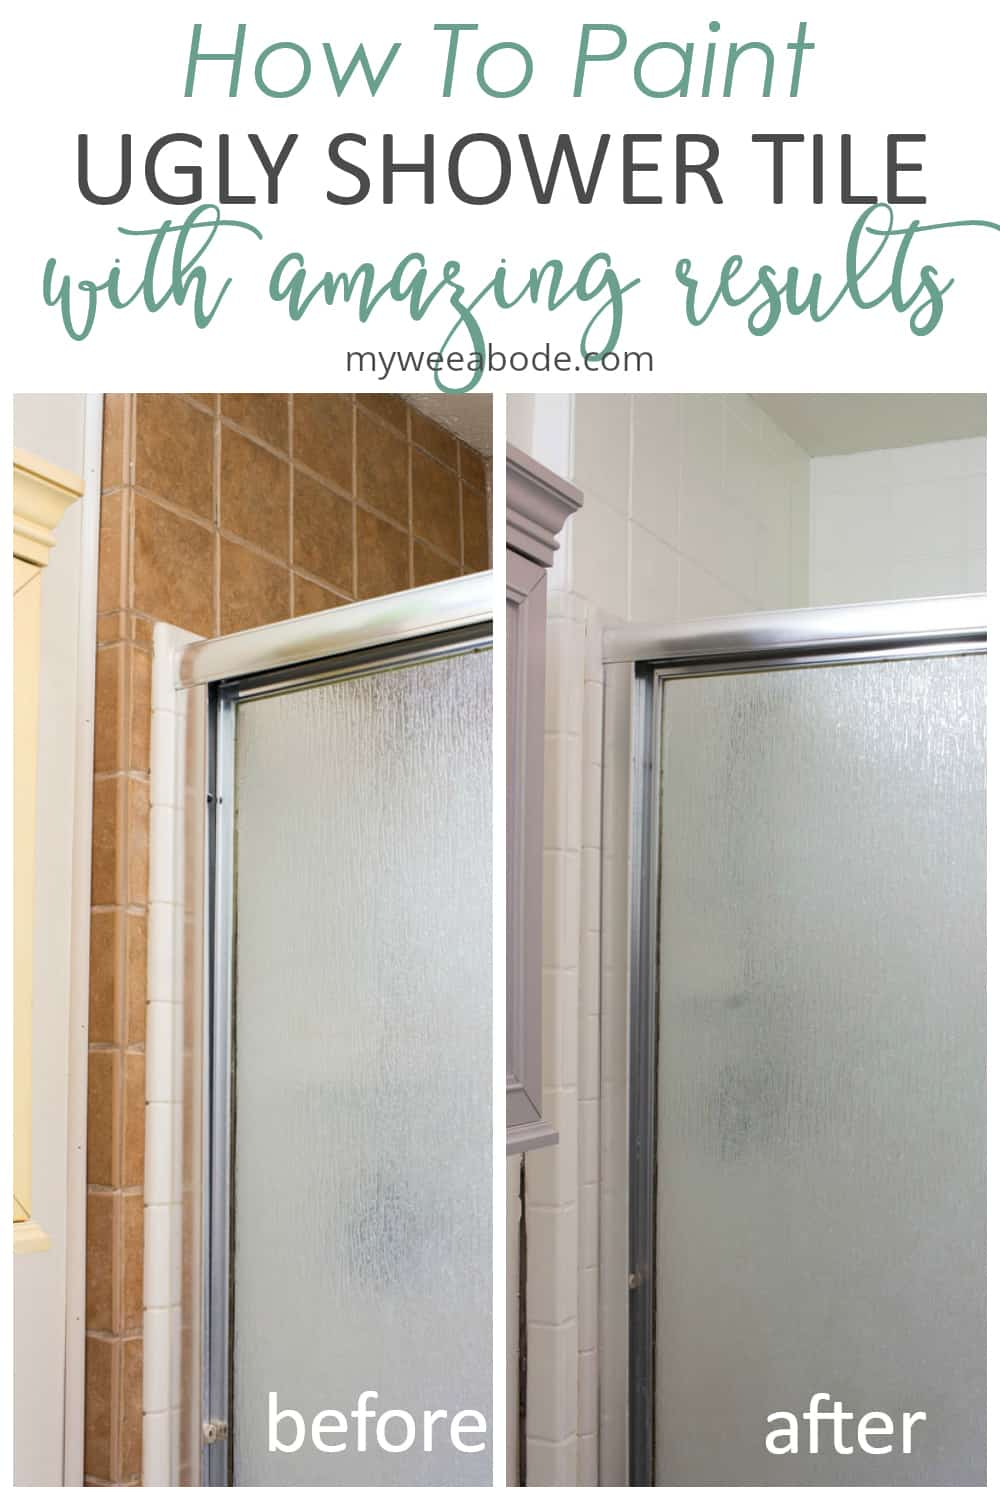 how to paint ugly shower tile with